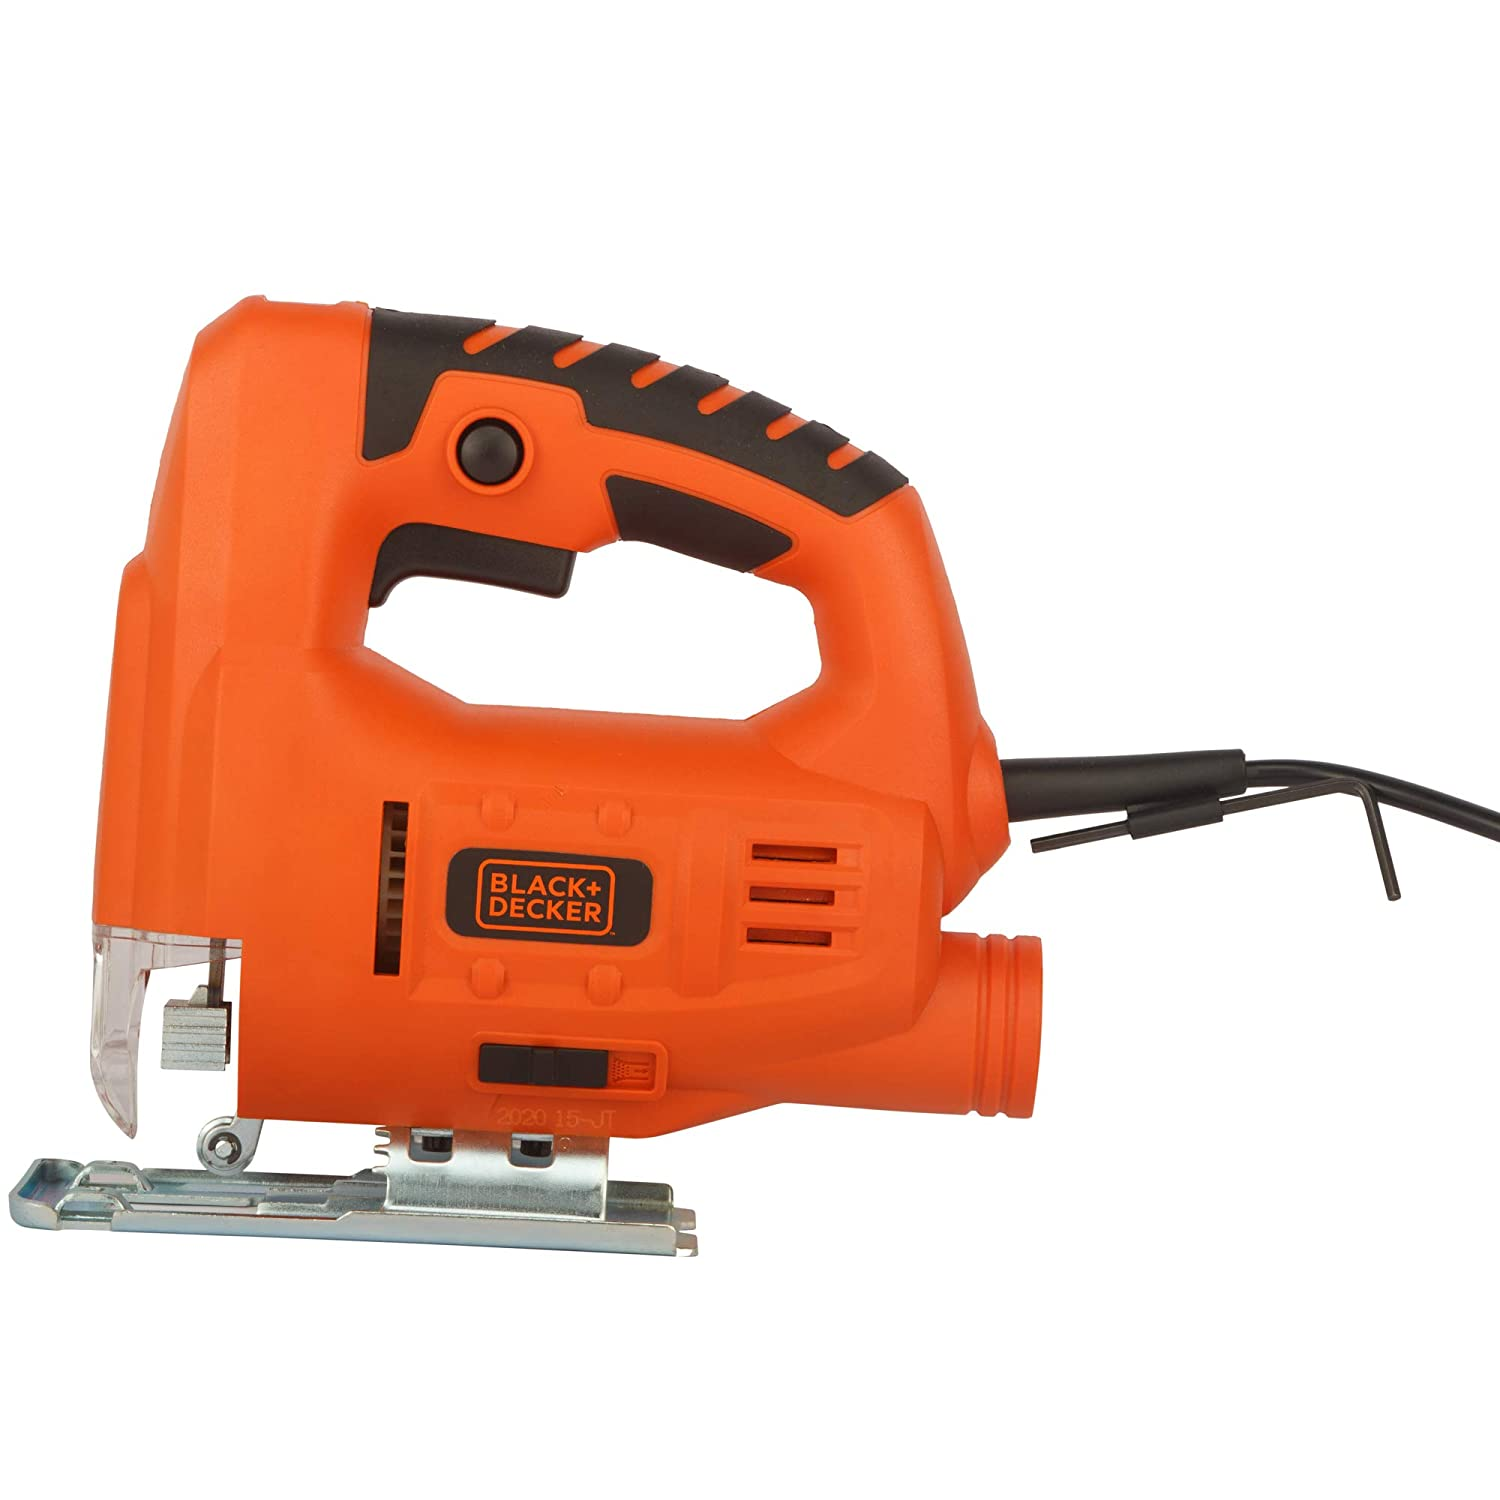 BLACK+DECKER JS20 400W Variable Speed Jigsaw with No blade included,JS20